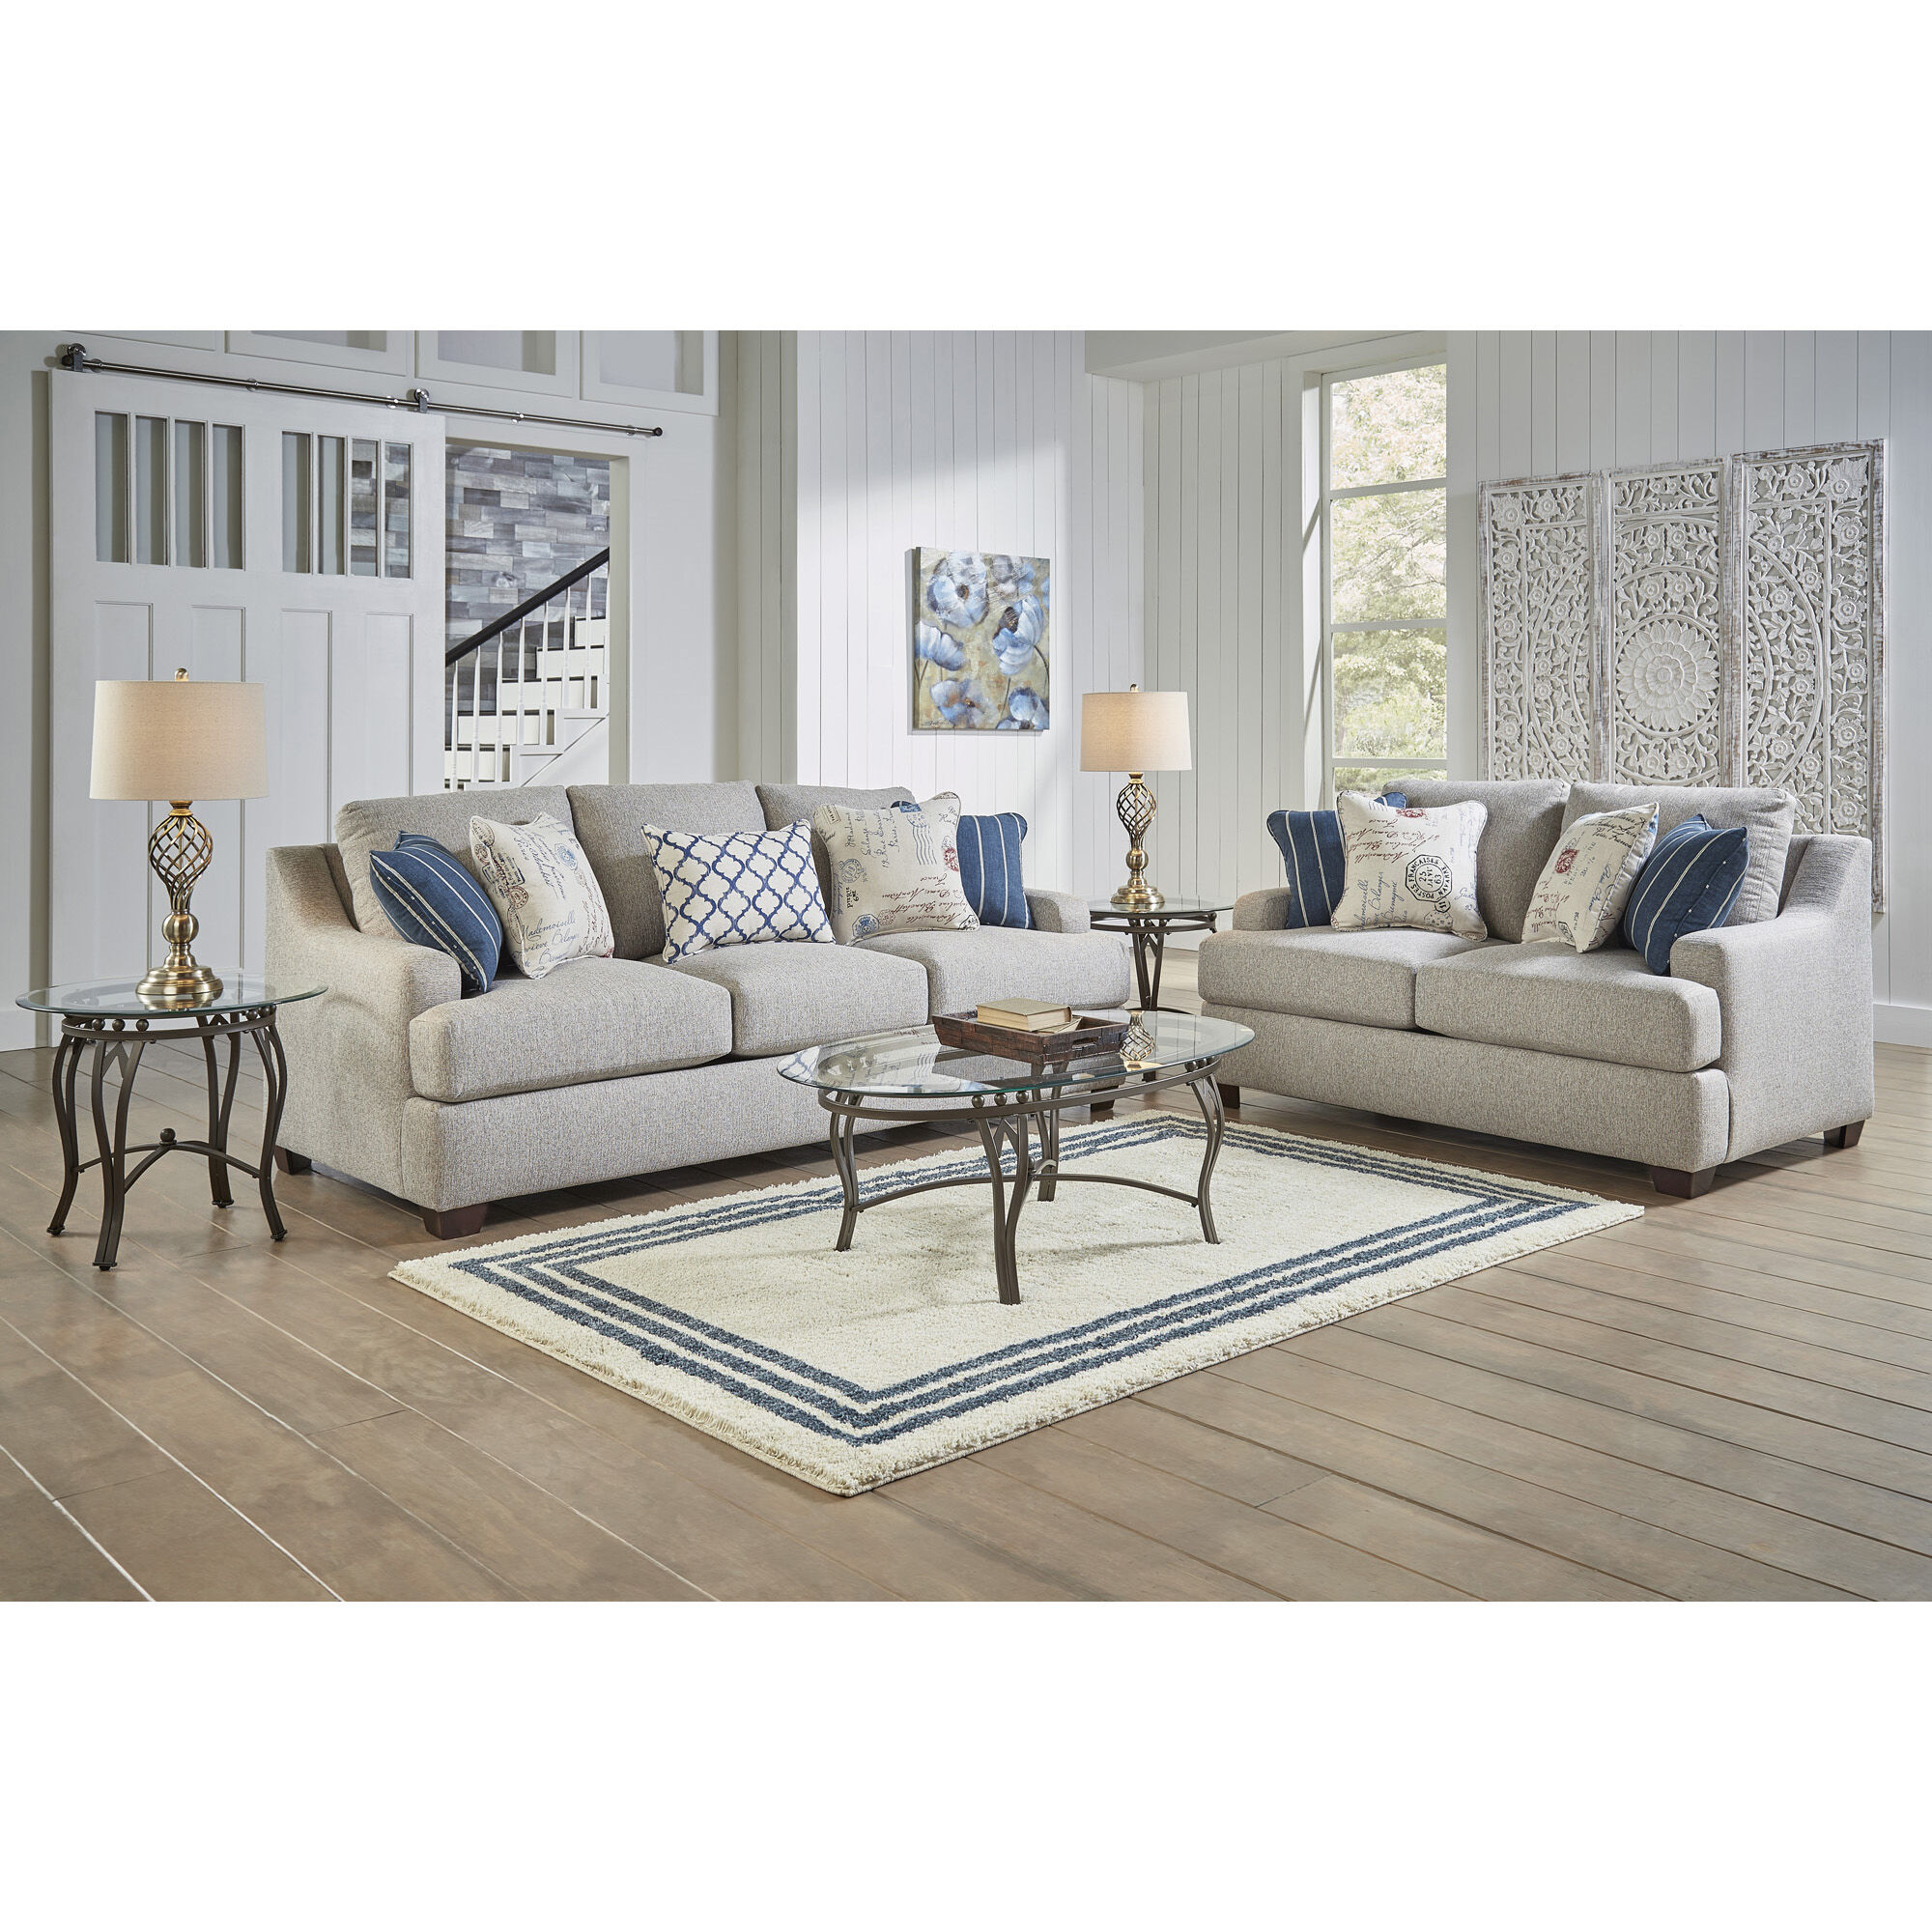 Superbe 2 Piece Flora Living Room Collection